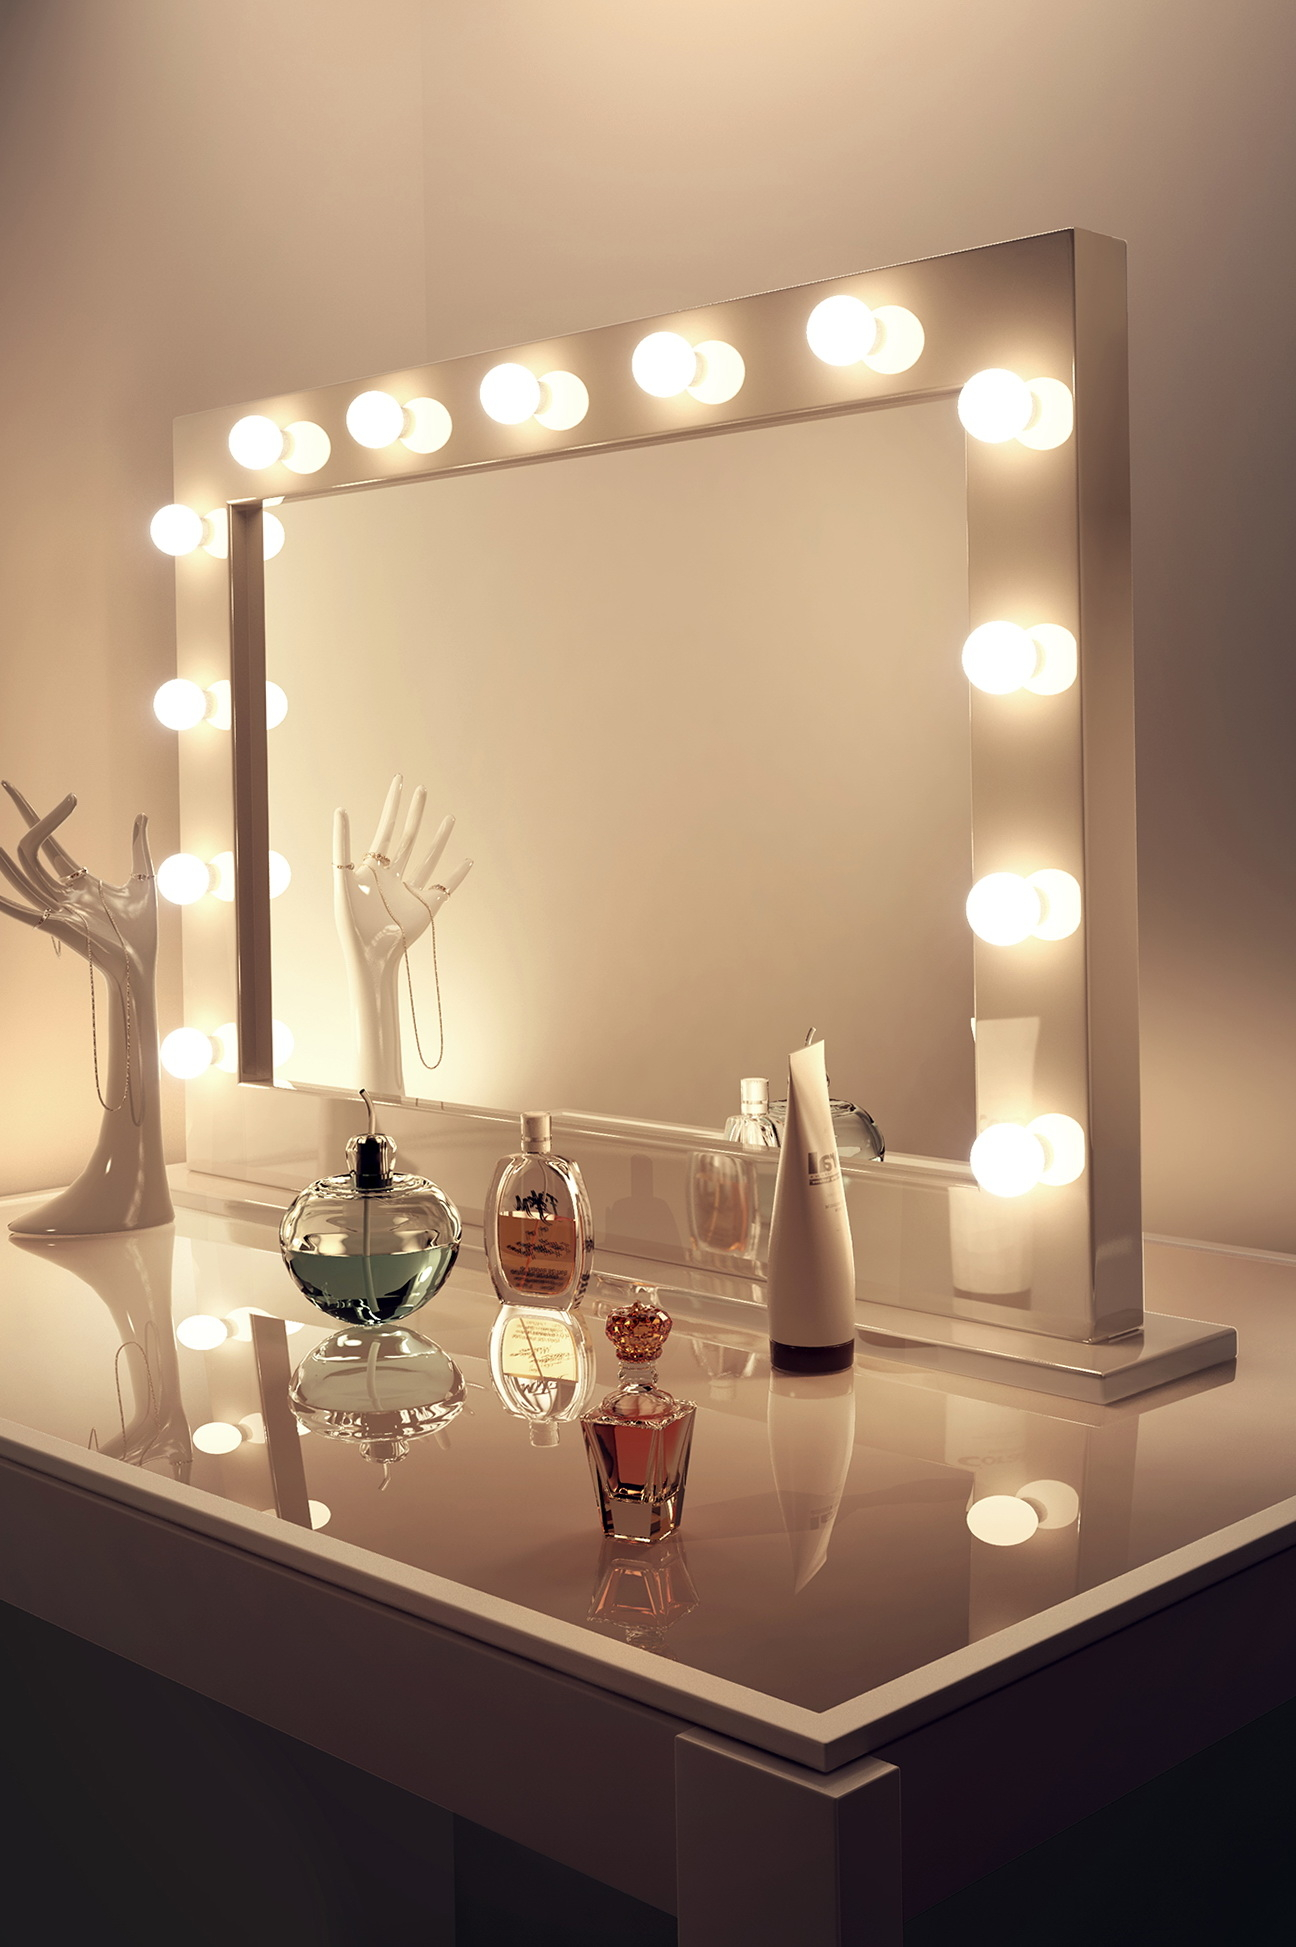 Mirror with lighting Dressing Table Vanity Makeup Mirror With Light Bulbs Home Design Ideas Visual Hunt 50 Vanity Mirror With Light Bulbs Up To 70 Off Visual Hunt